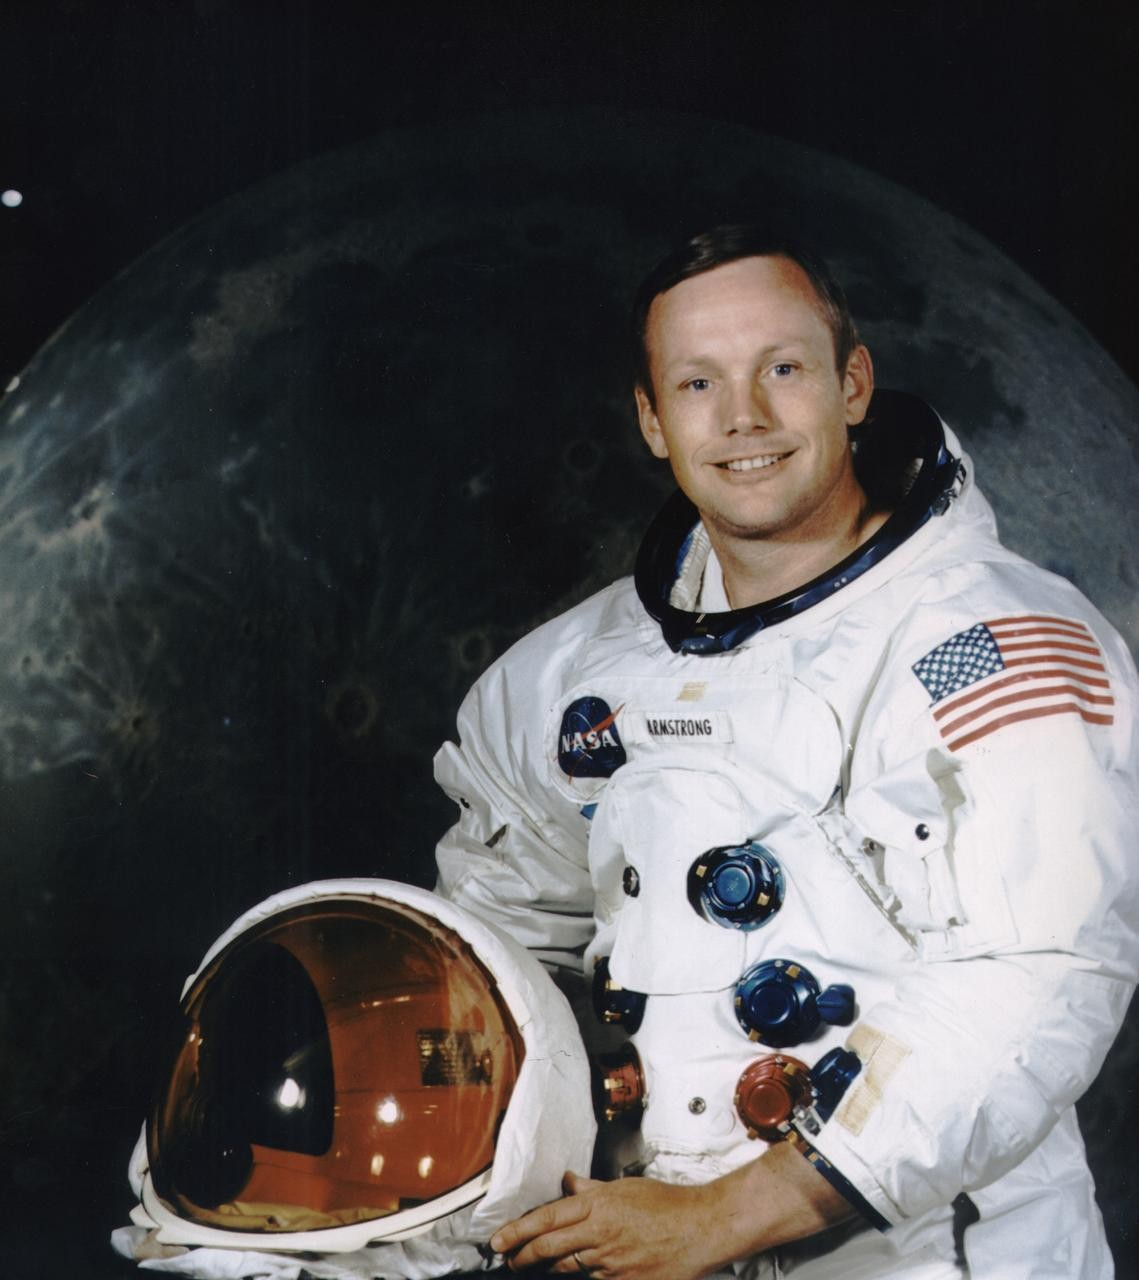 A portrait of astronaut Neil Armstrong in his spacesuit.